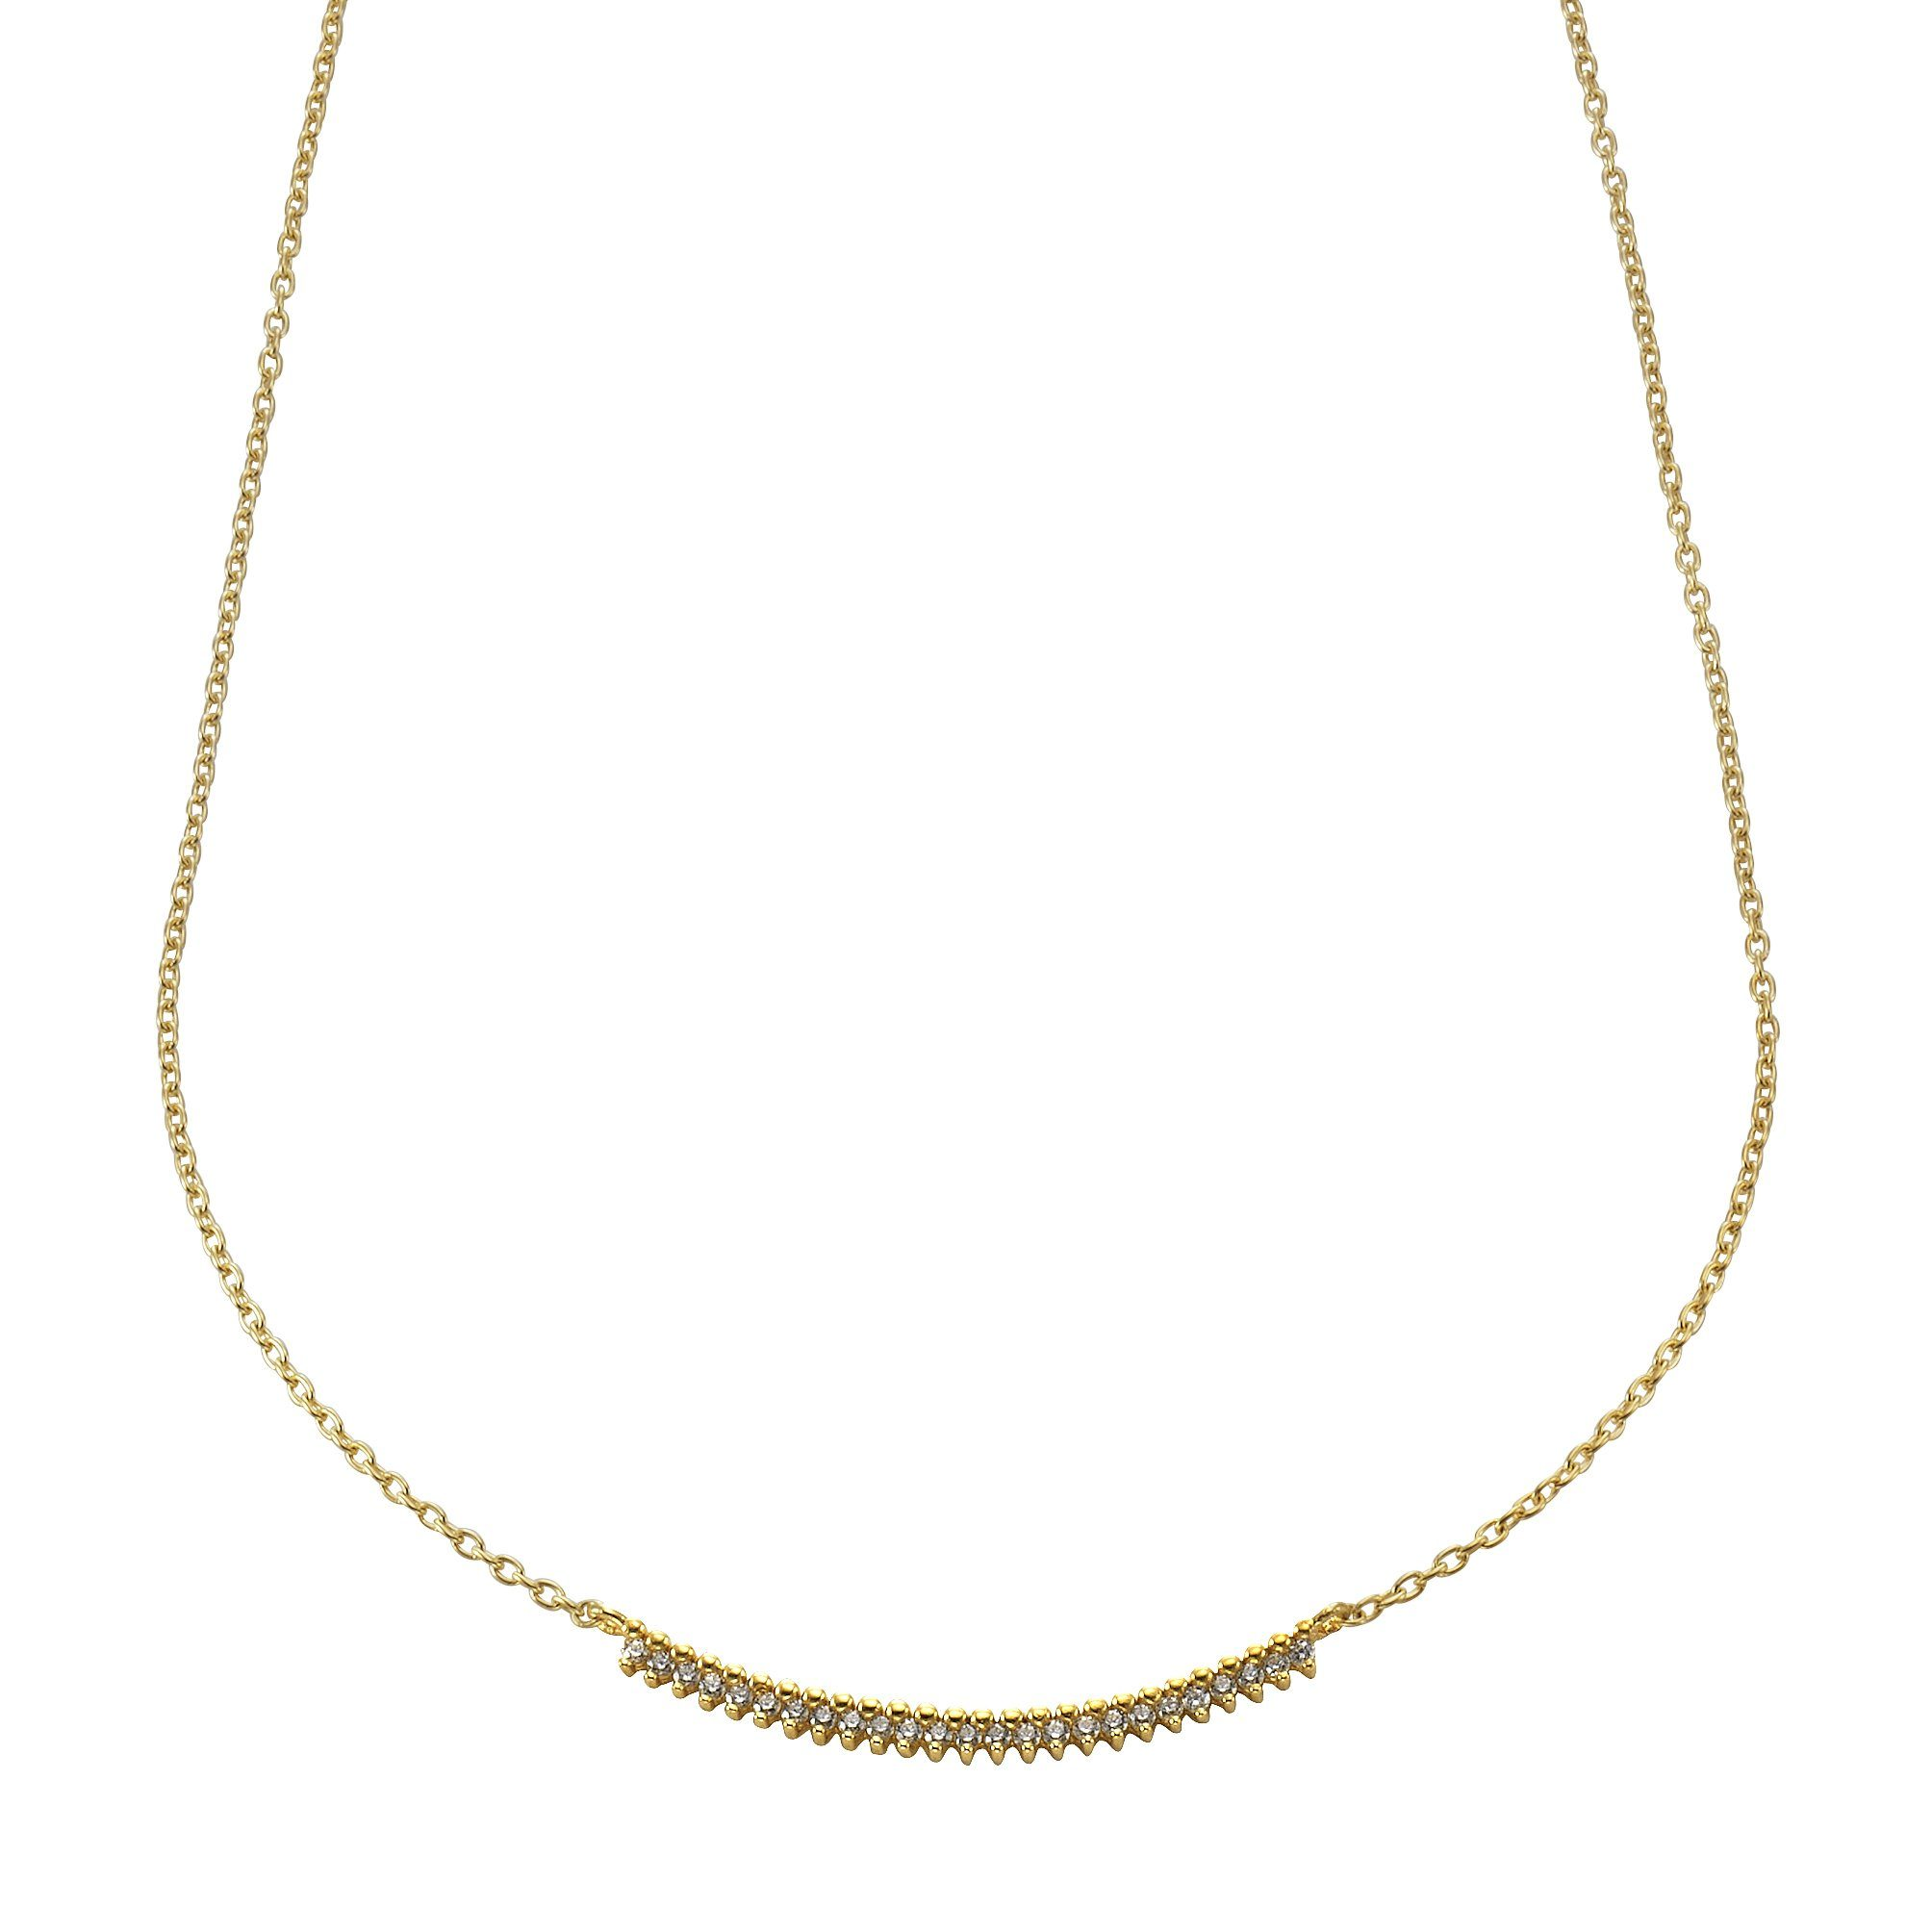 Jacques Lemans Collier 375/- Gold mit Zirkonia